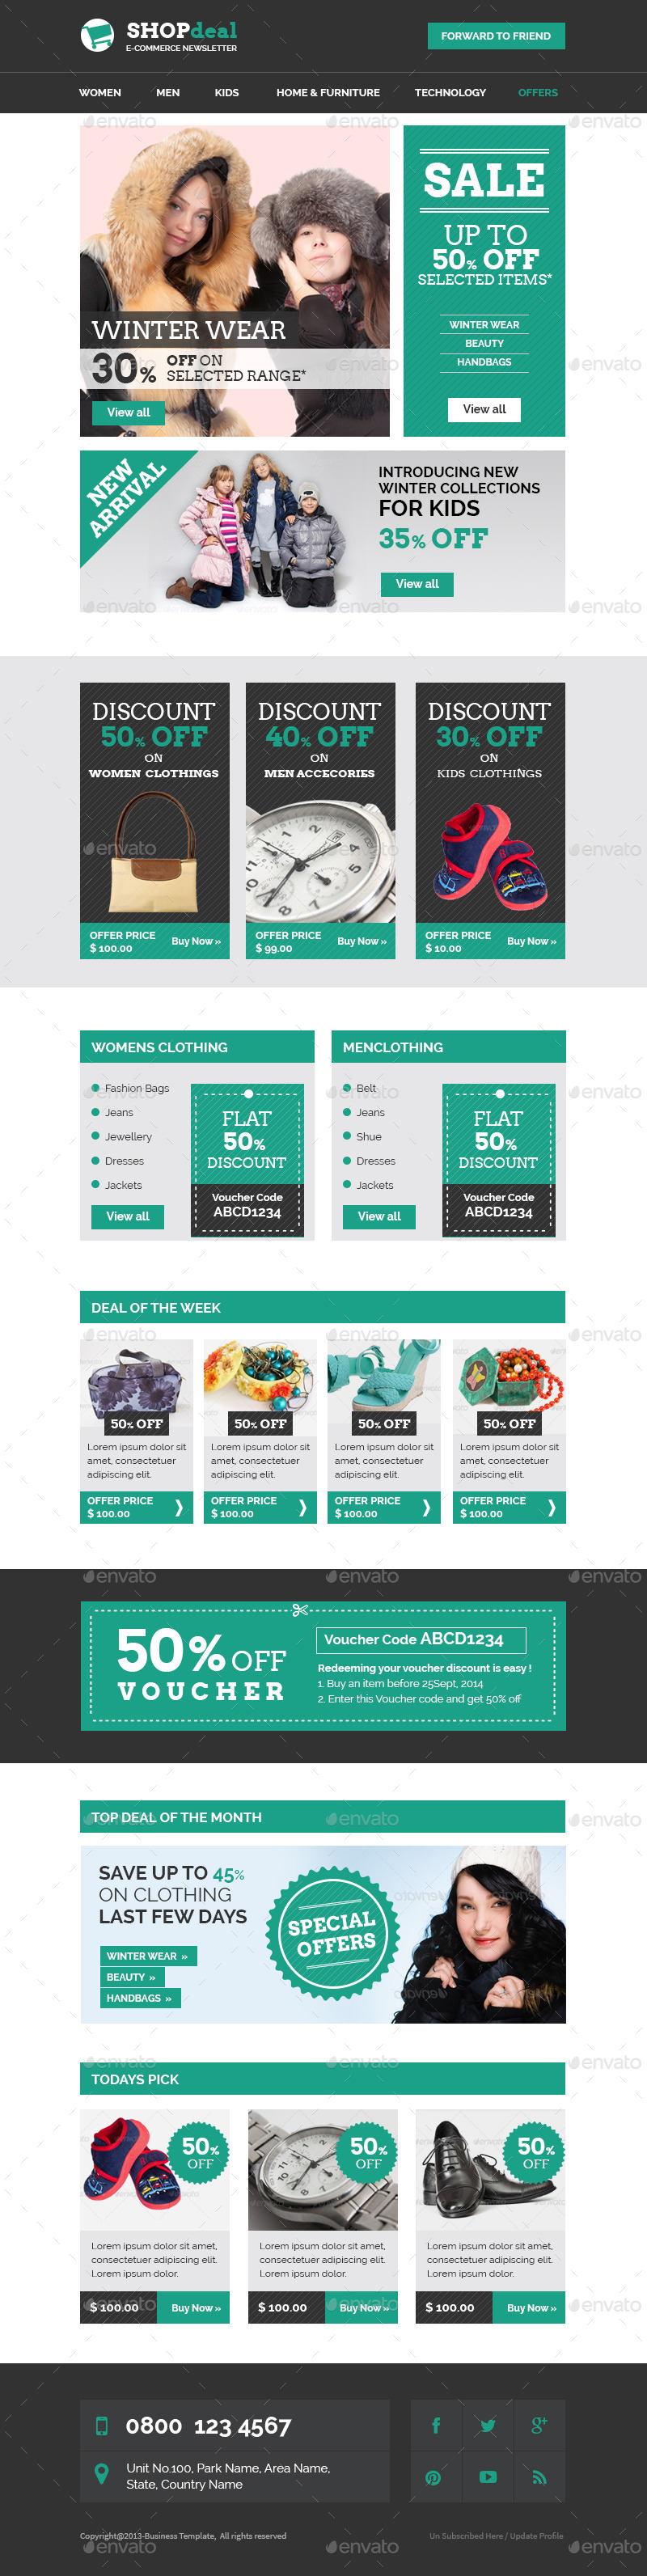 offer email template